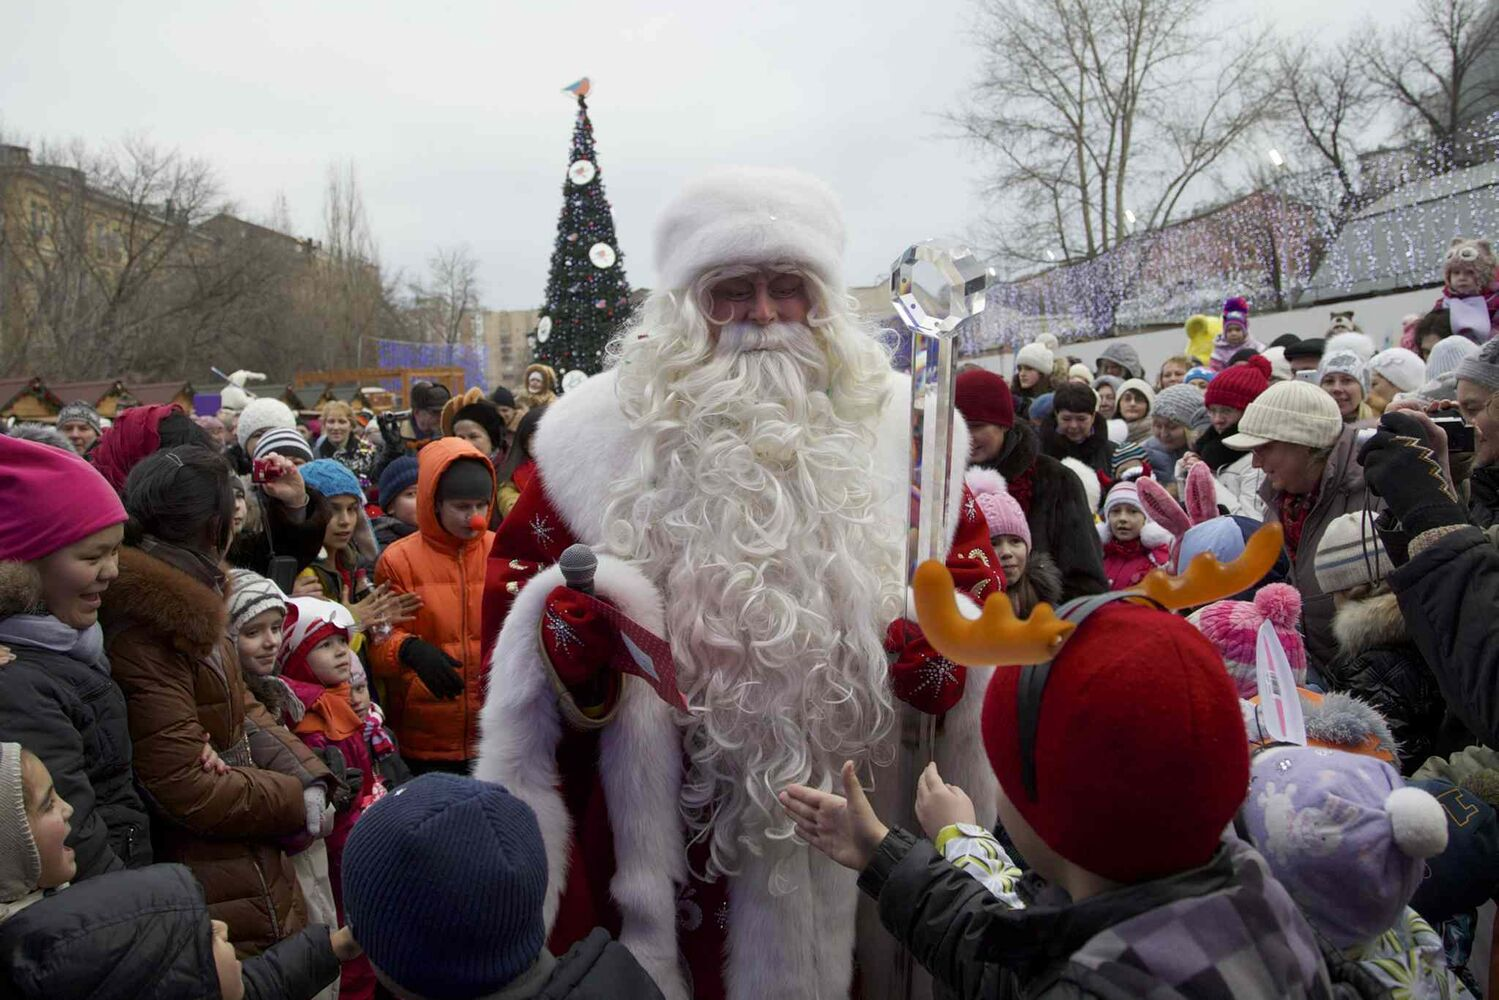 Children surround Russian Ded Moroz (Father Frost), who arrived at the Moscow Zoo as a part of a New Year celebrations, in Moscow, Russia, on Wednesday, Dec. 25, 2013. Russians celebrate Orthodox Christmas on Jan. 7. (The Canadian Press)